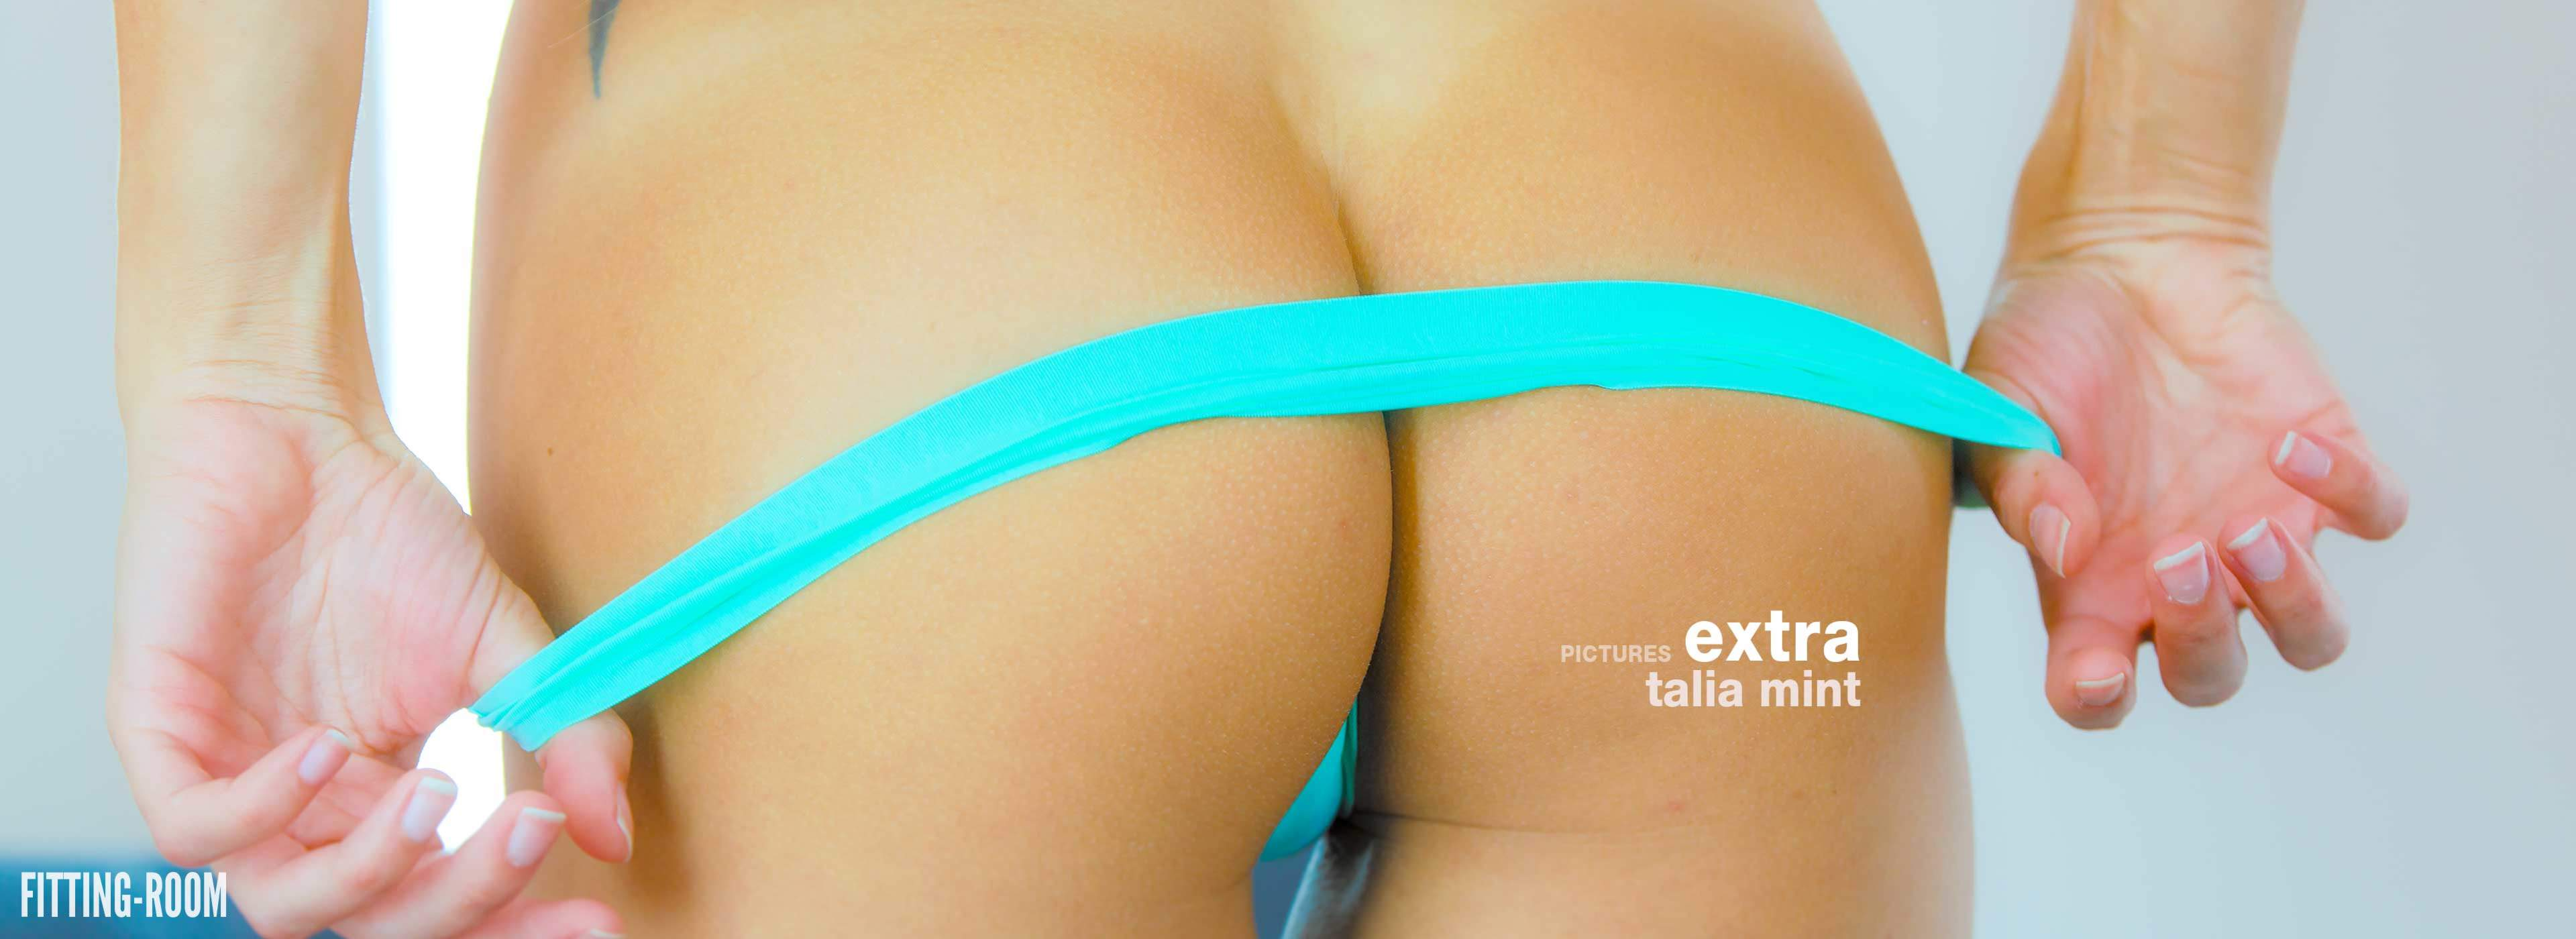 Talia Mint stepped into the fitting-room her thongs and upskirt videos and pics in the members area, where she rubs her pussy raw